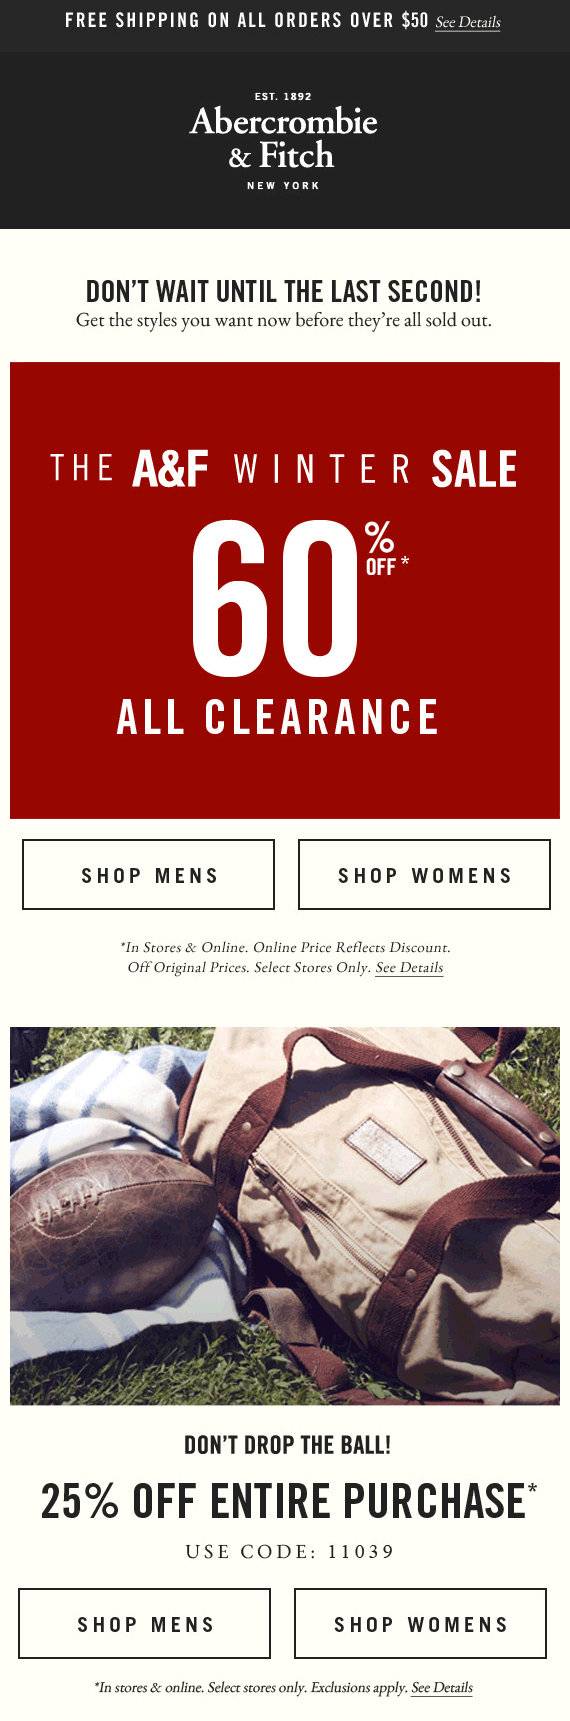 Abercrombie & Fitch Coupon February 2018 60% off clearance + 25% off everything at Abercrombie & Fitch, or online via promo code 11039